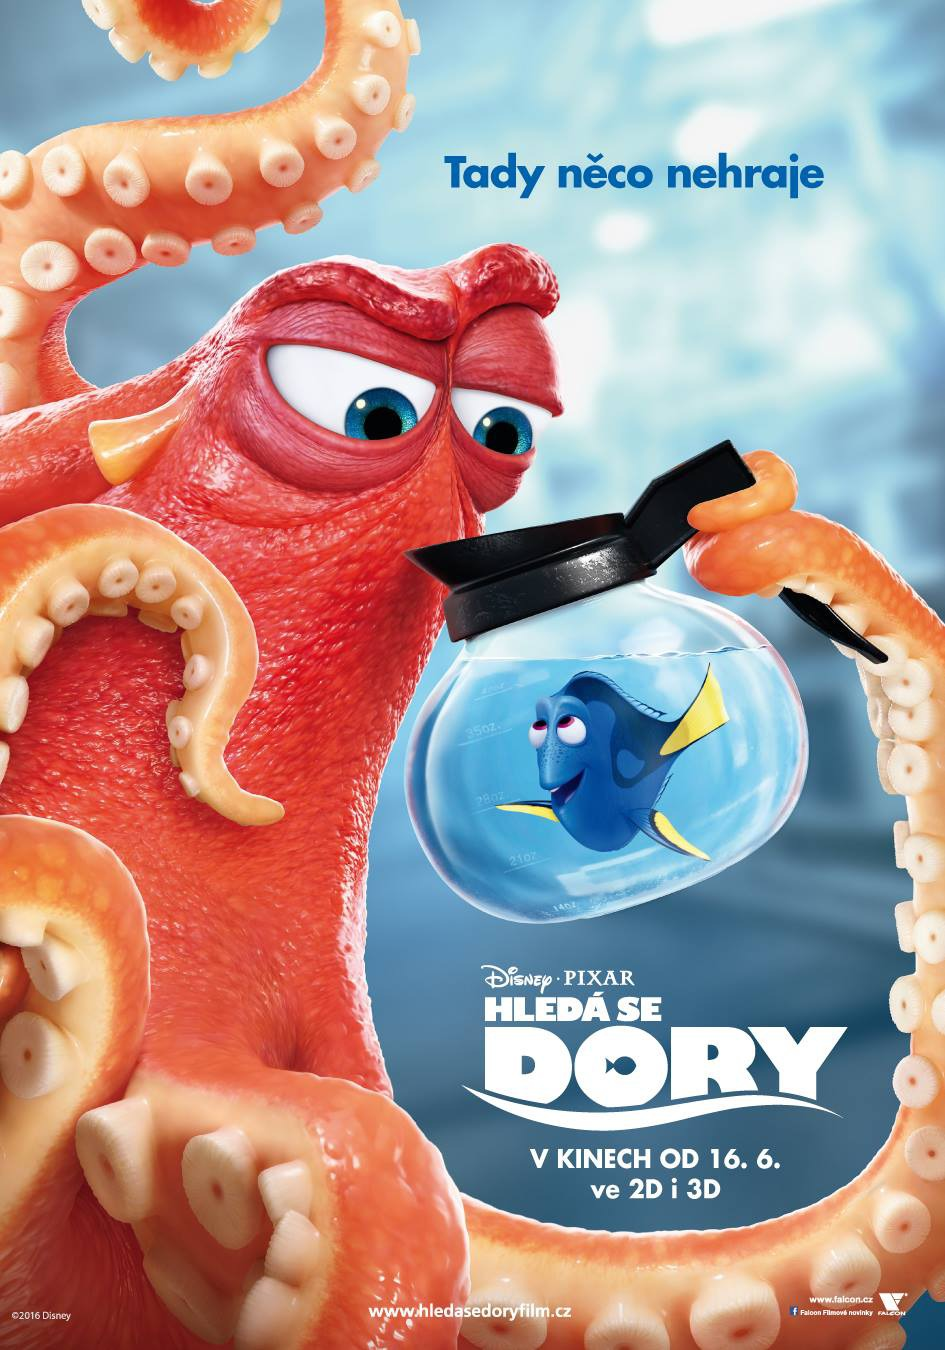 Finding Dory-XLG-19Maio2016 (3)